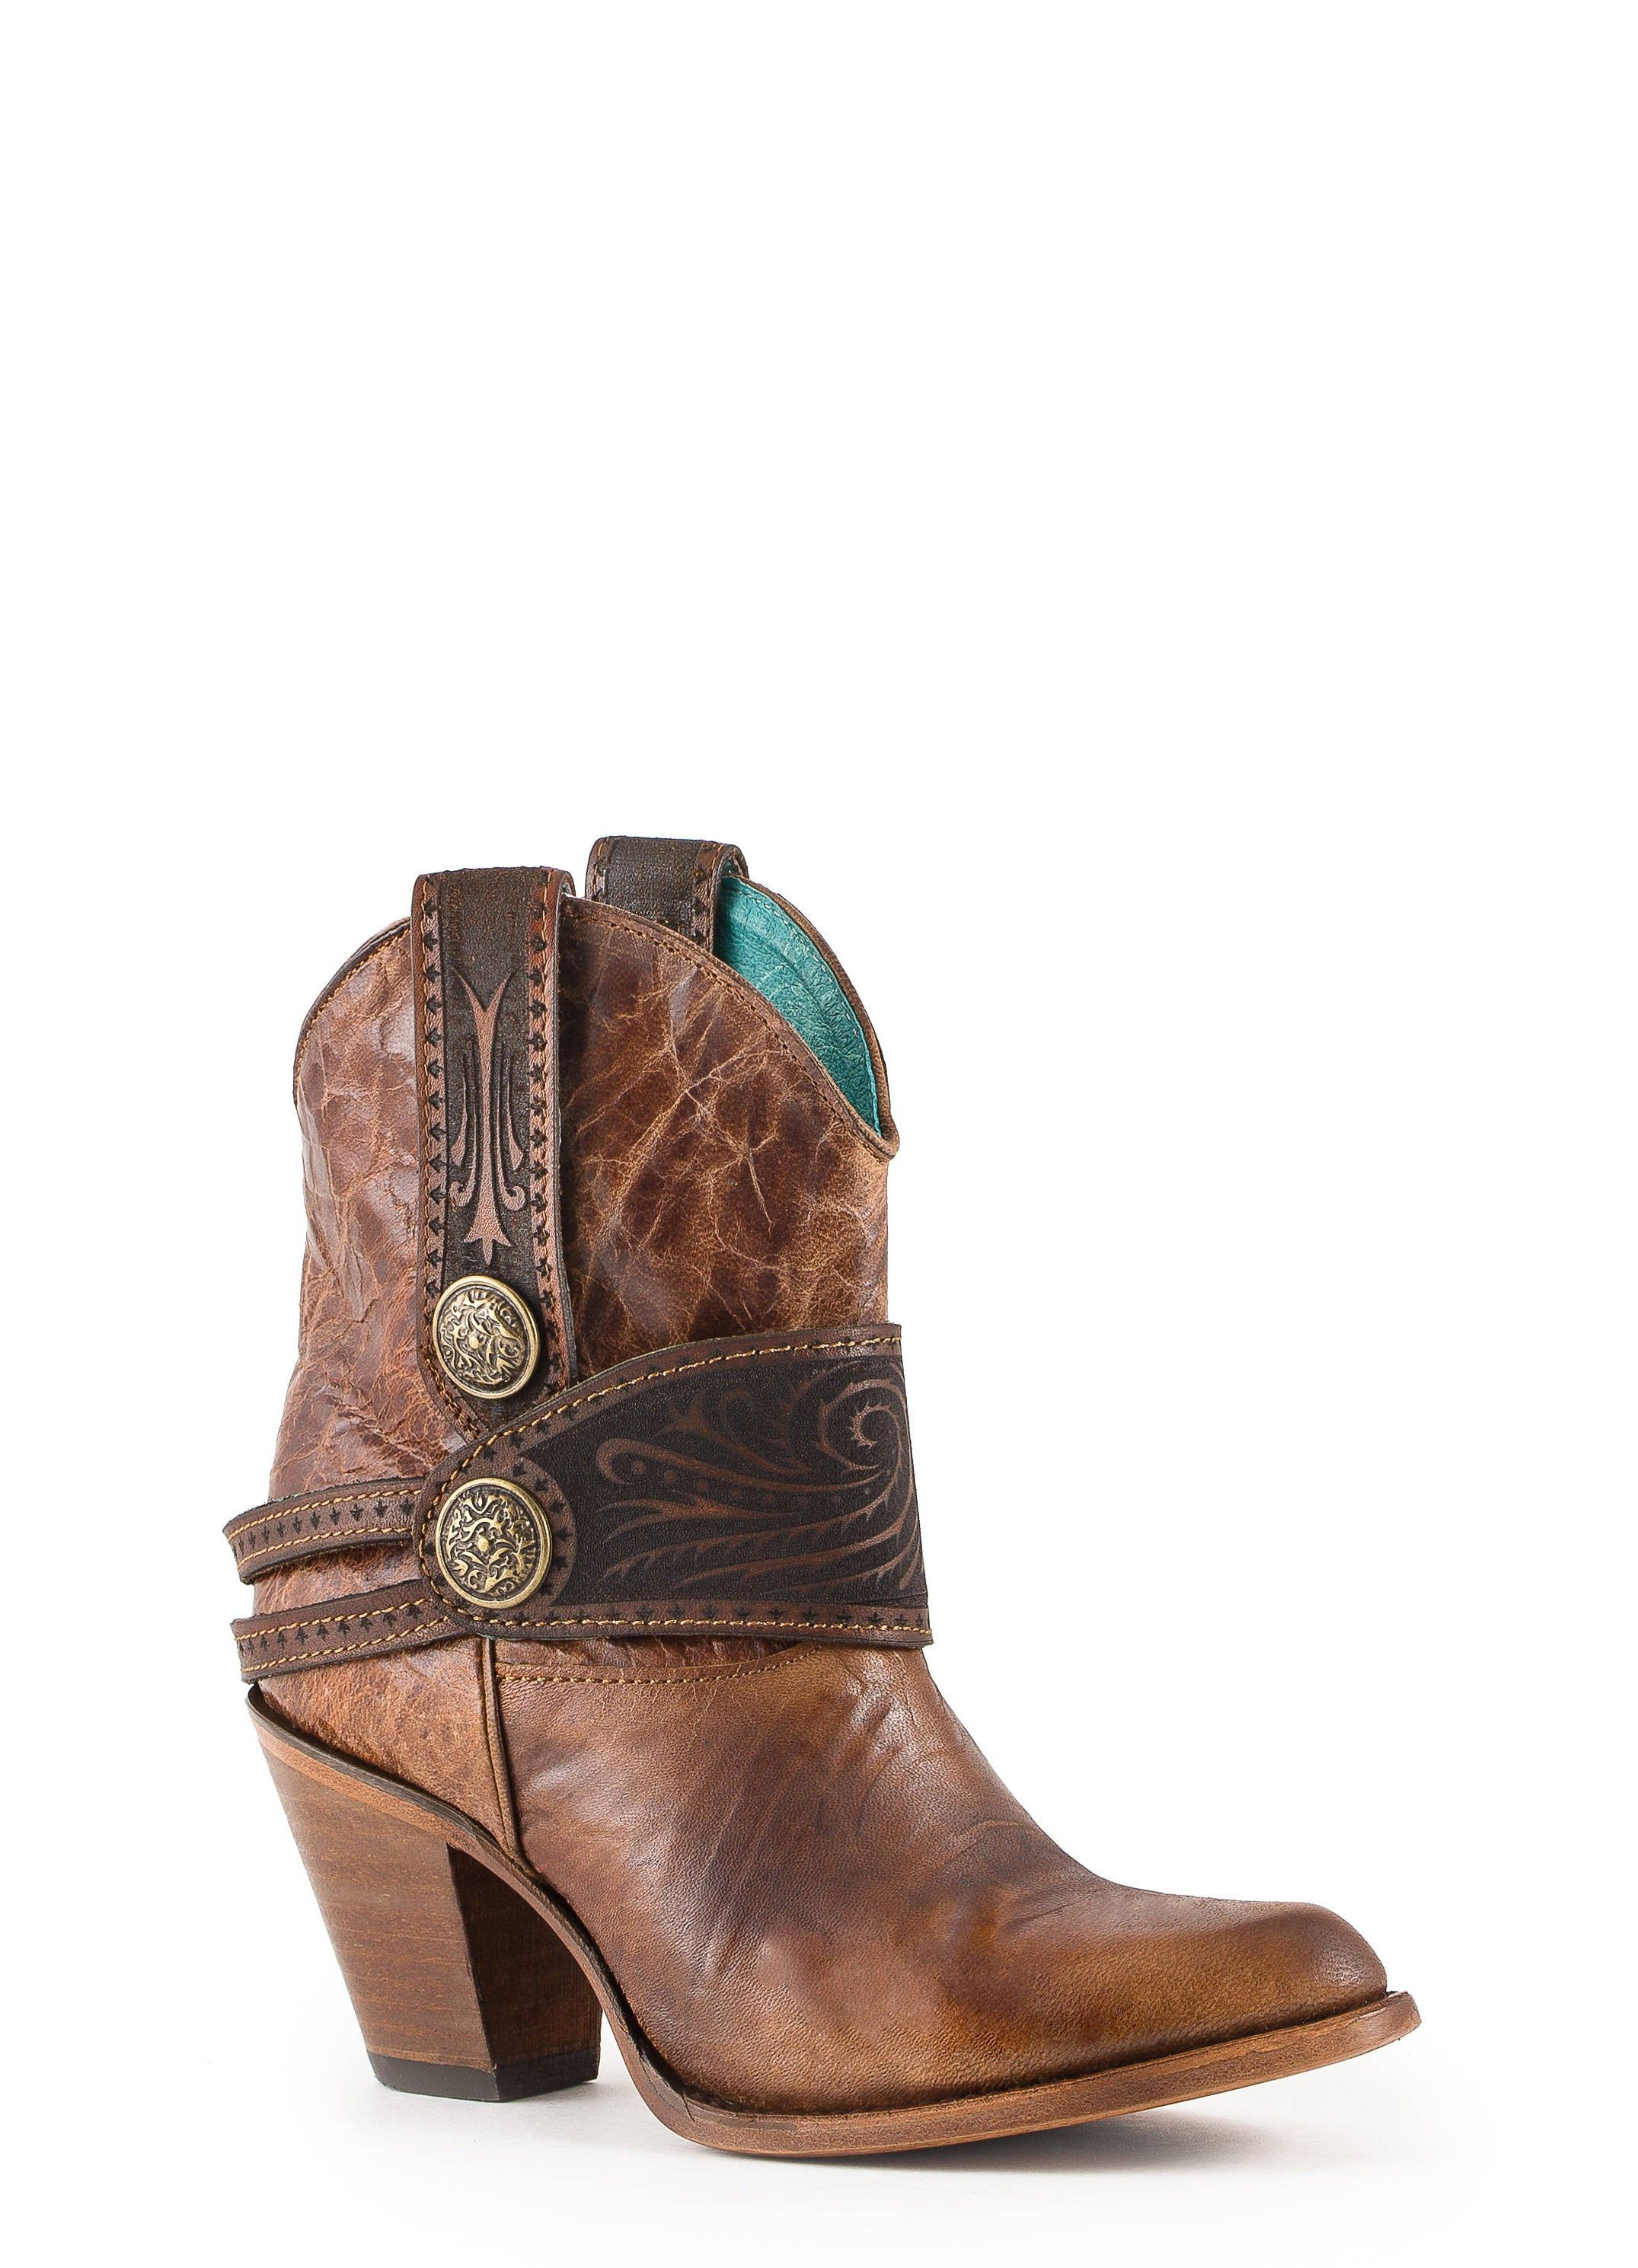 Corral Boots C2907 vwTvsw6